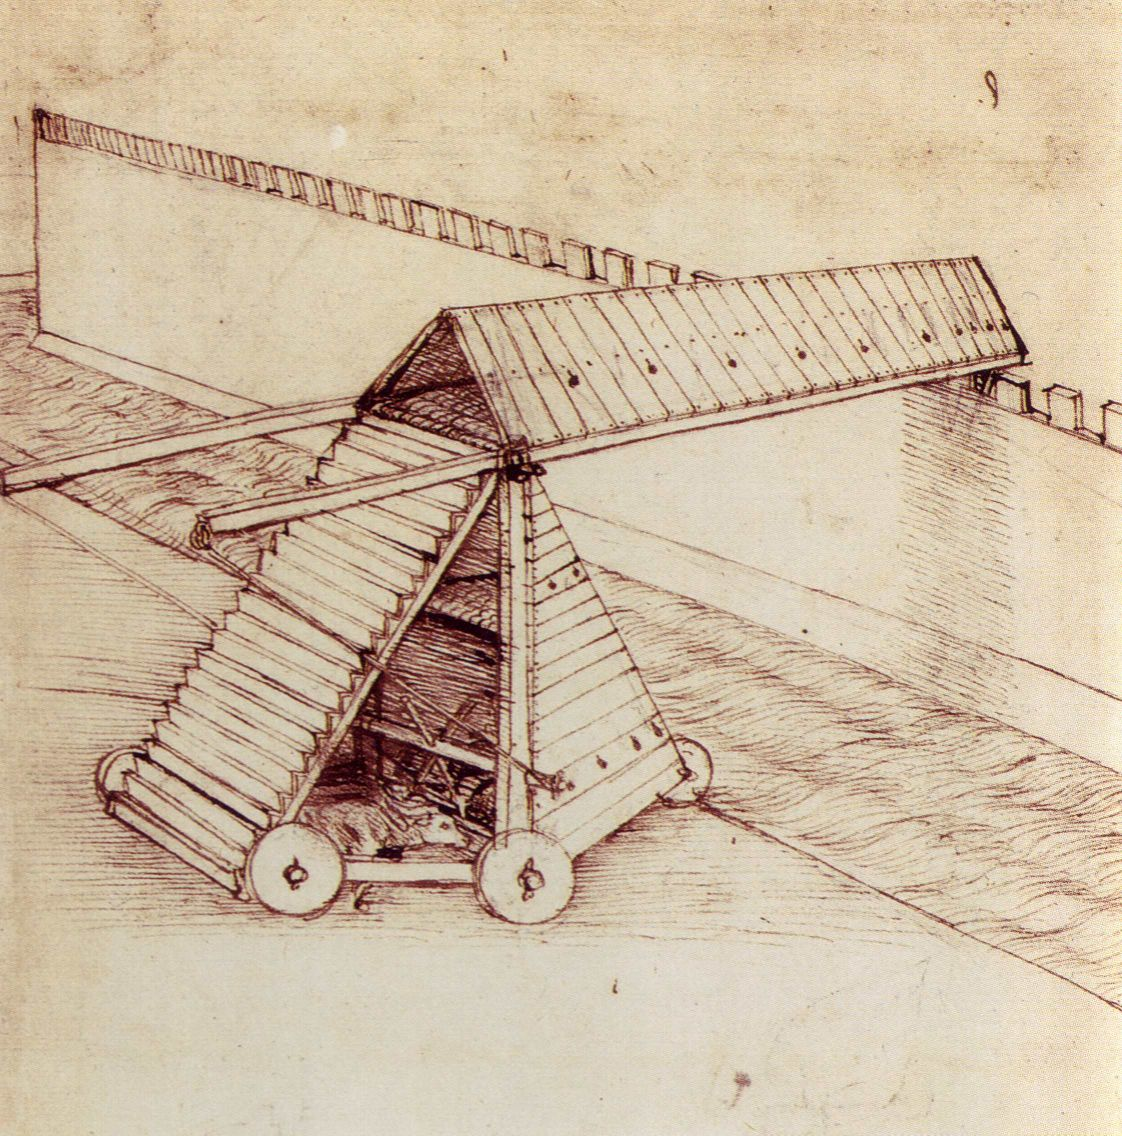 davinci helicopter with Inventions on Leonardo Da Vinci Ball Bearing as well Le Clos Luce In Amboise also Leonardo Da Vinci Helicopter in addition Art Leonardo Of All Trades moreover File Ribauldequins   Leonardo da Vinci studies.